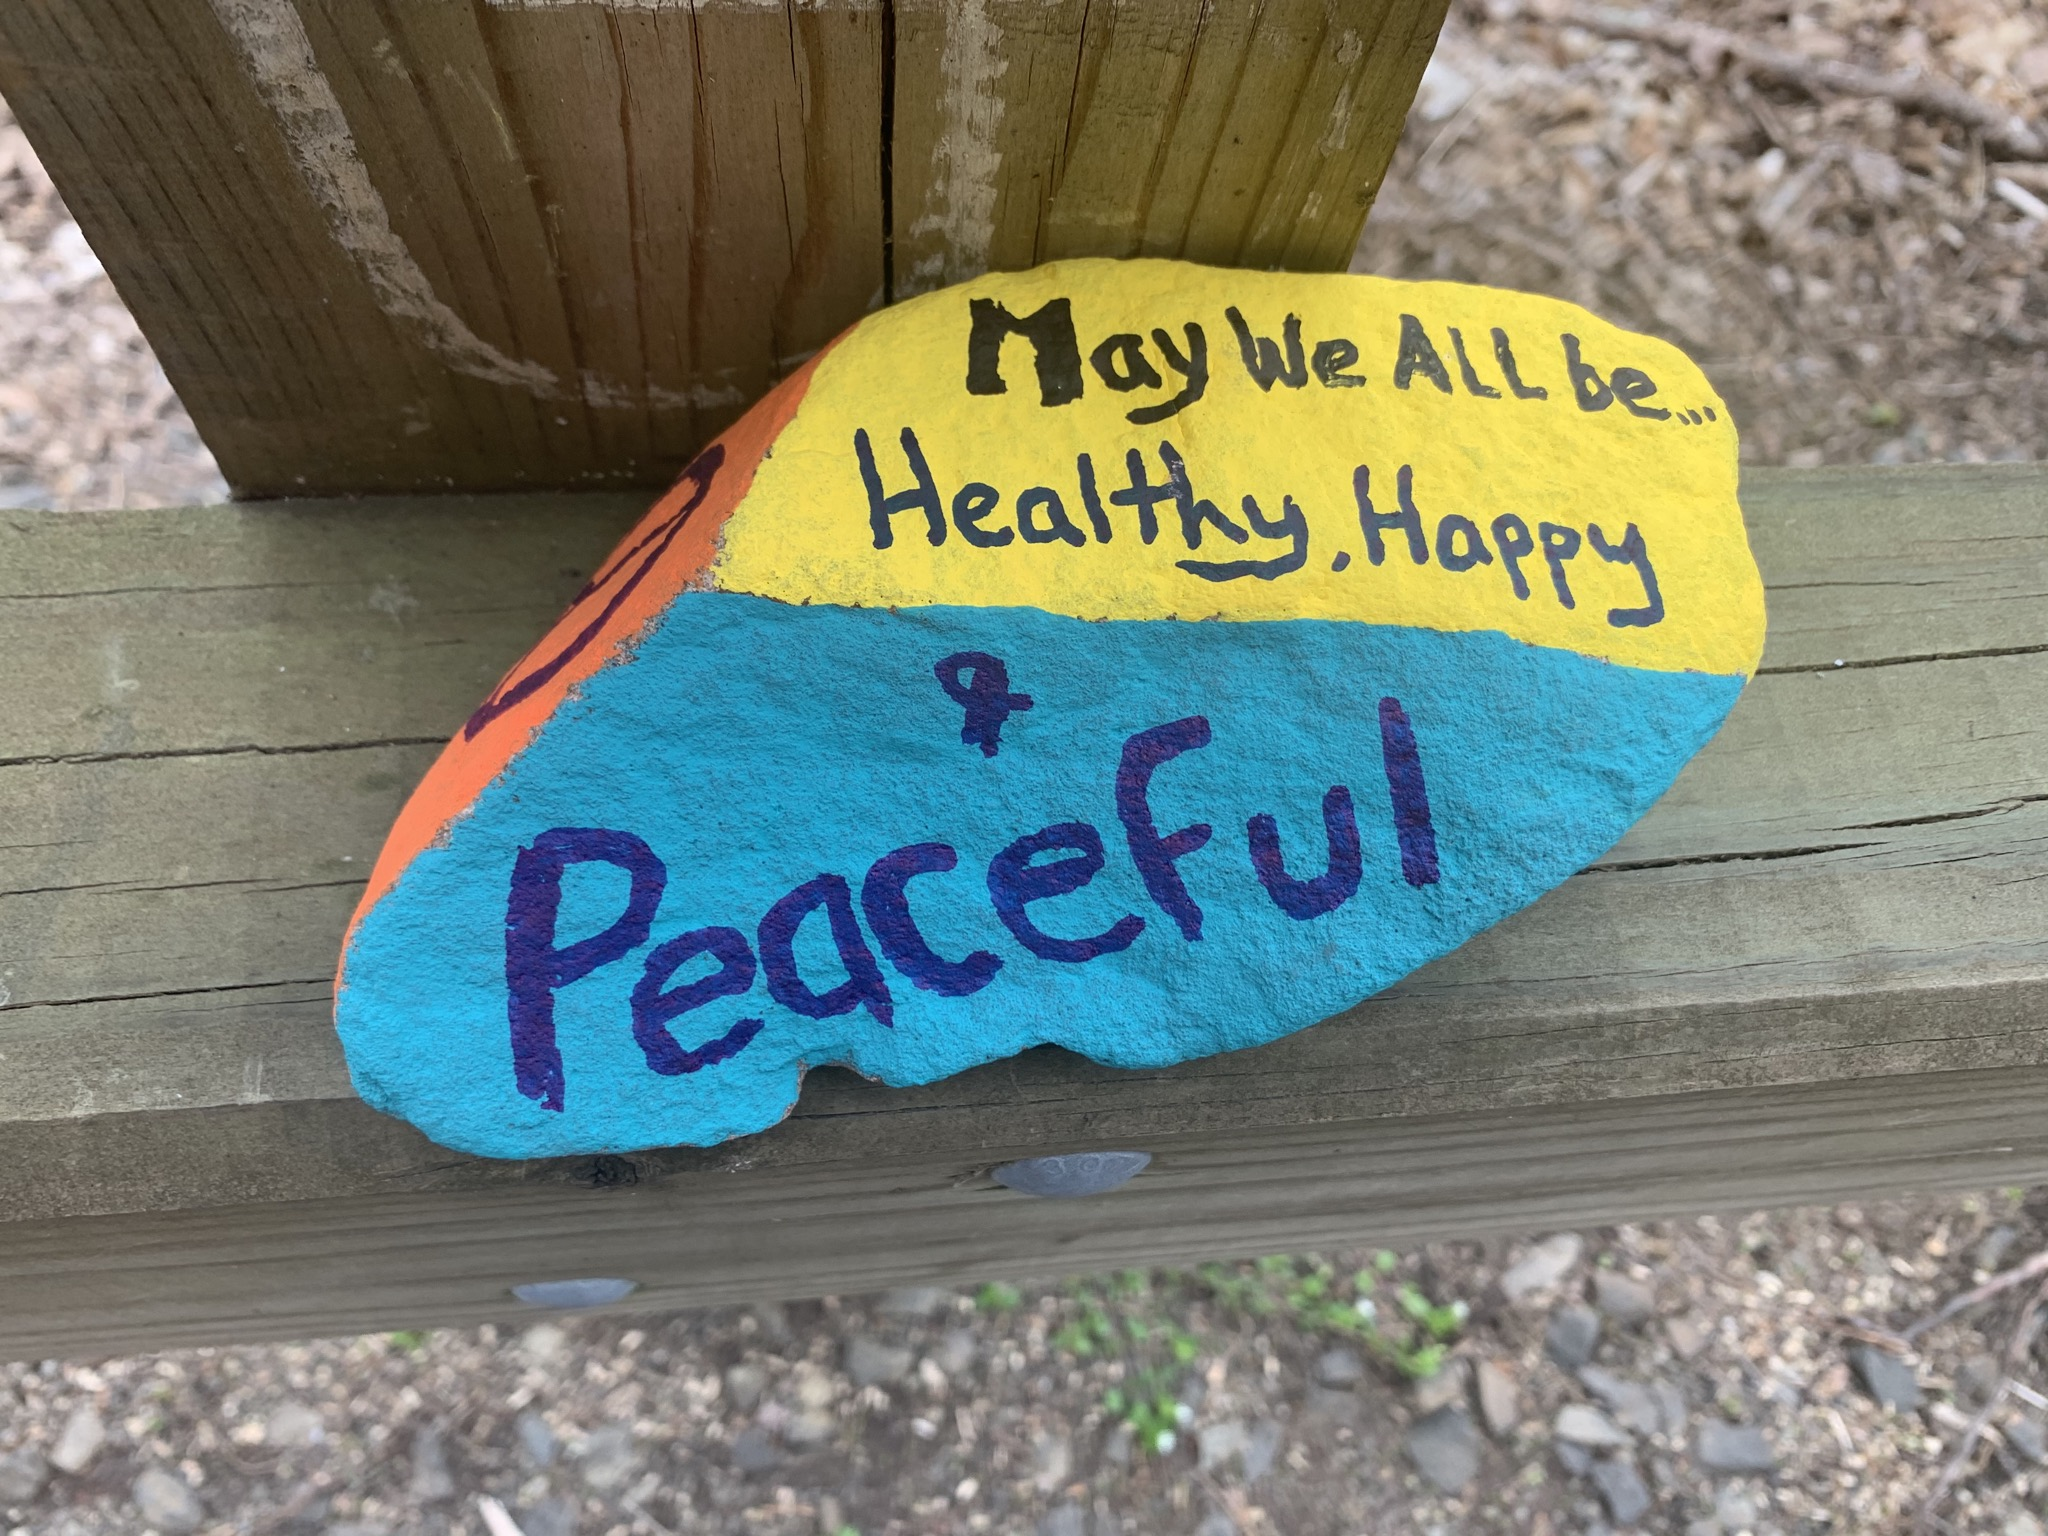 A painted rock that reads 'May we all be healthy, happy, & peaceful'